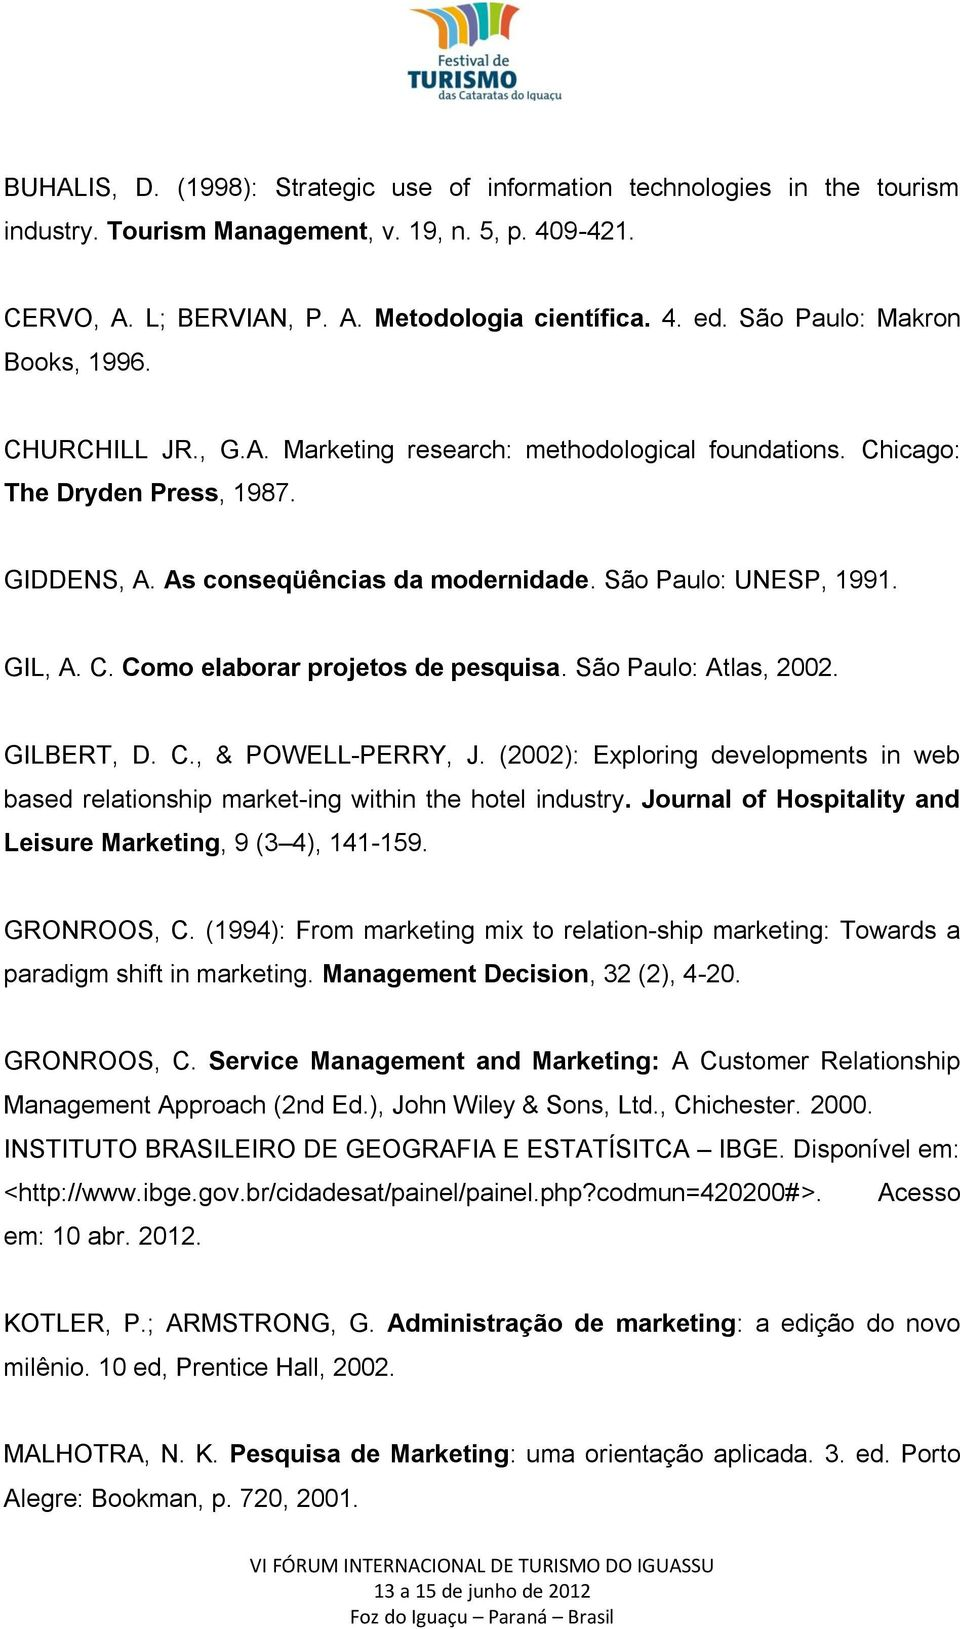 GIL, A. C. Como elaborar projetos de pesquisa. São Paulo: Atlas, 2002. GILBERT, D. C., & POWELL-PERRY, J. (2002): Exploring developments in web based relationship market-ing within the hotel industry.